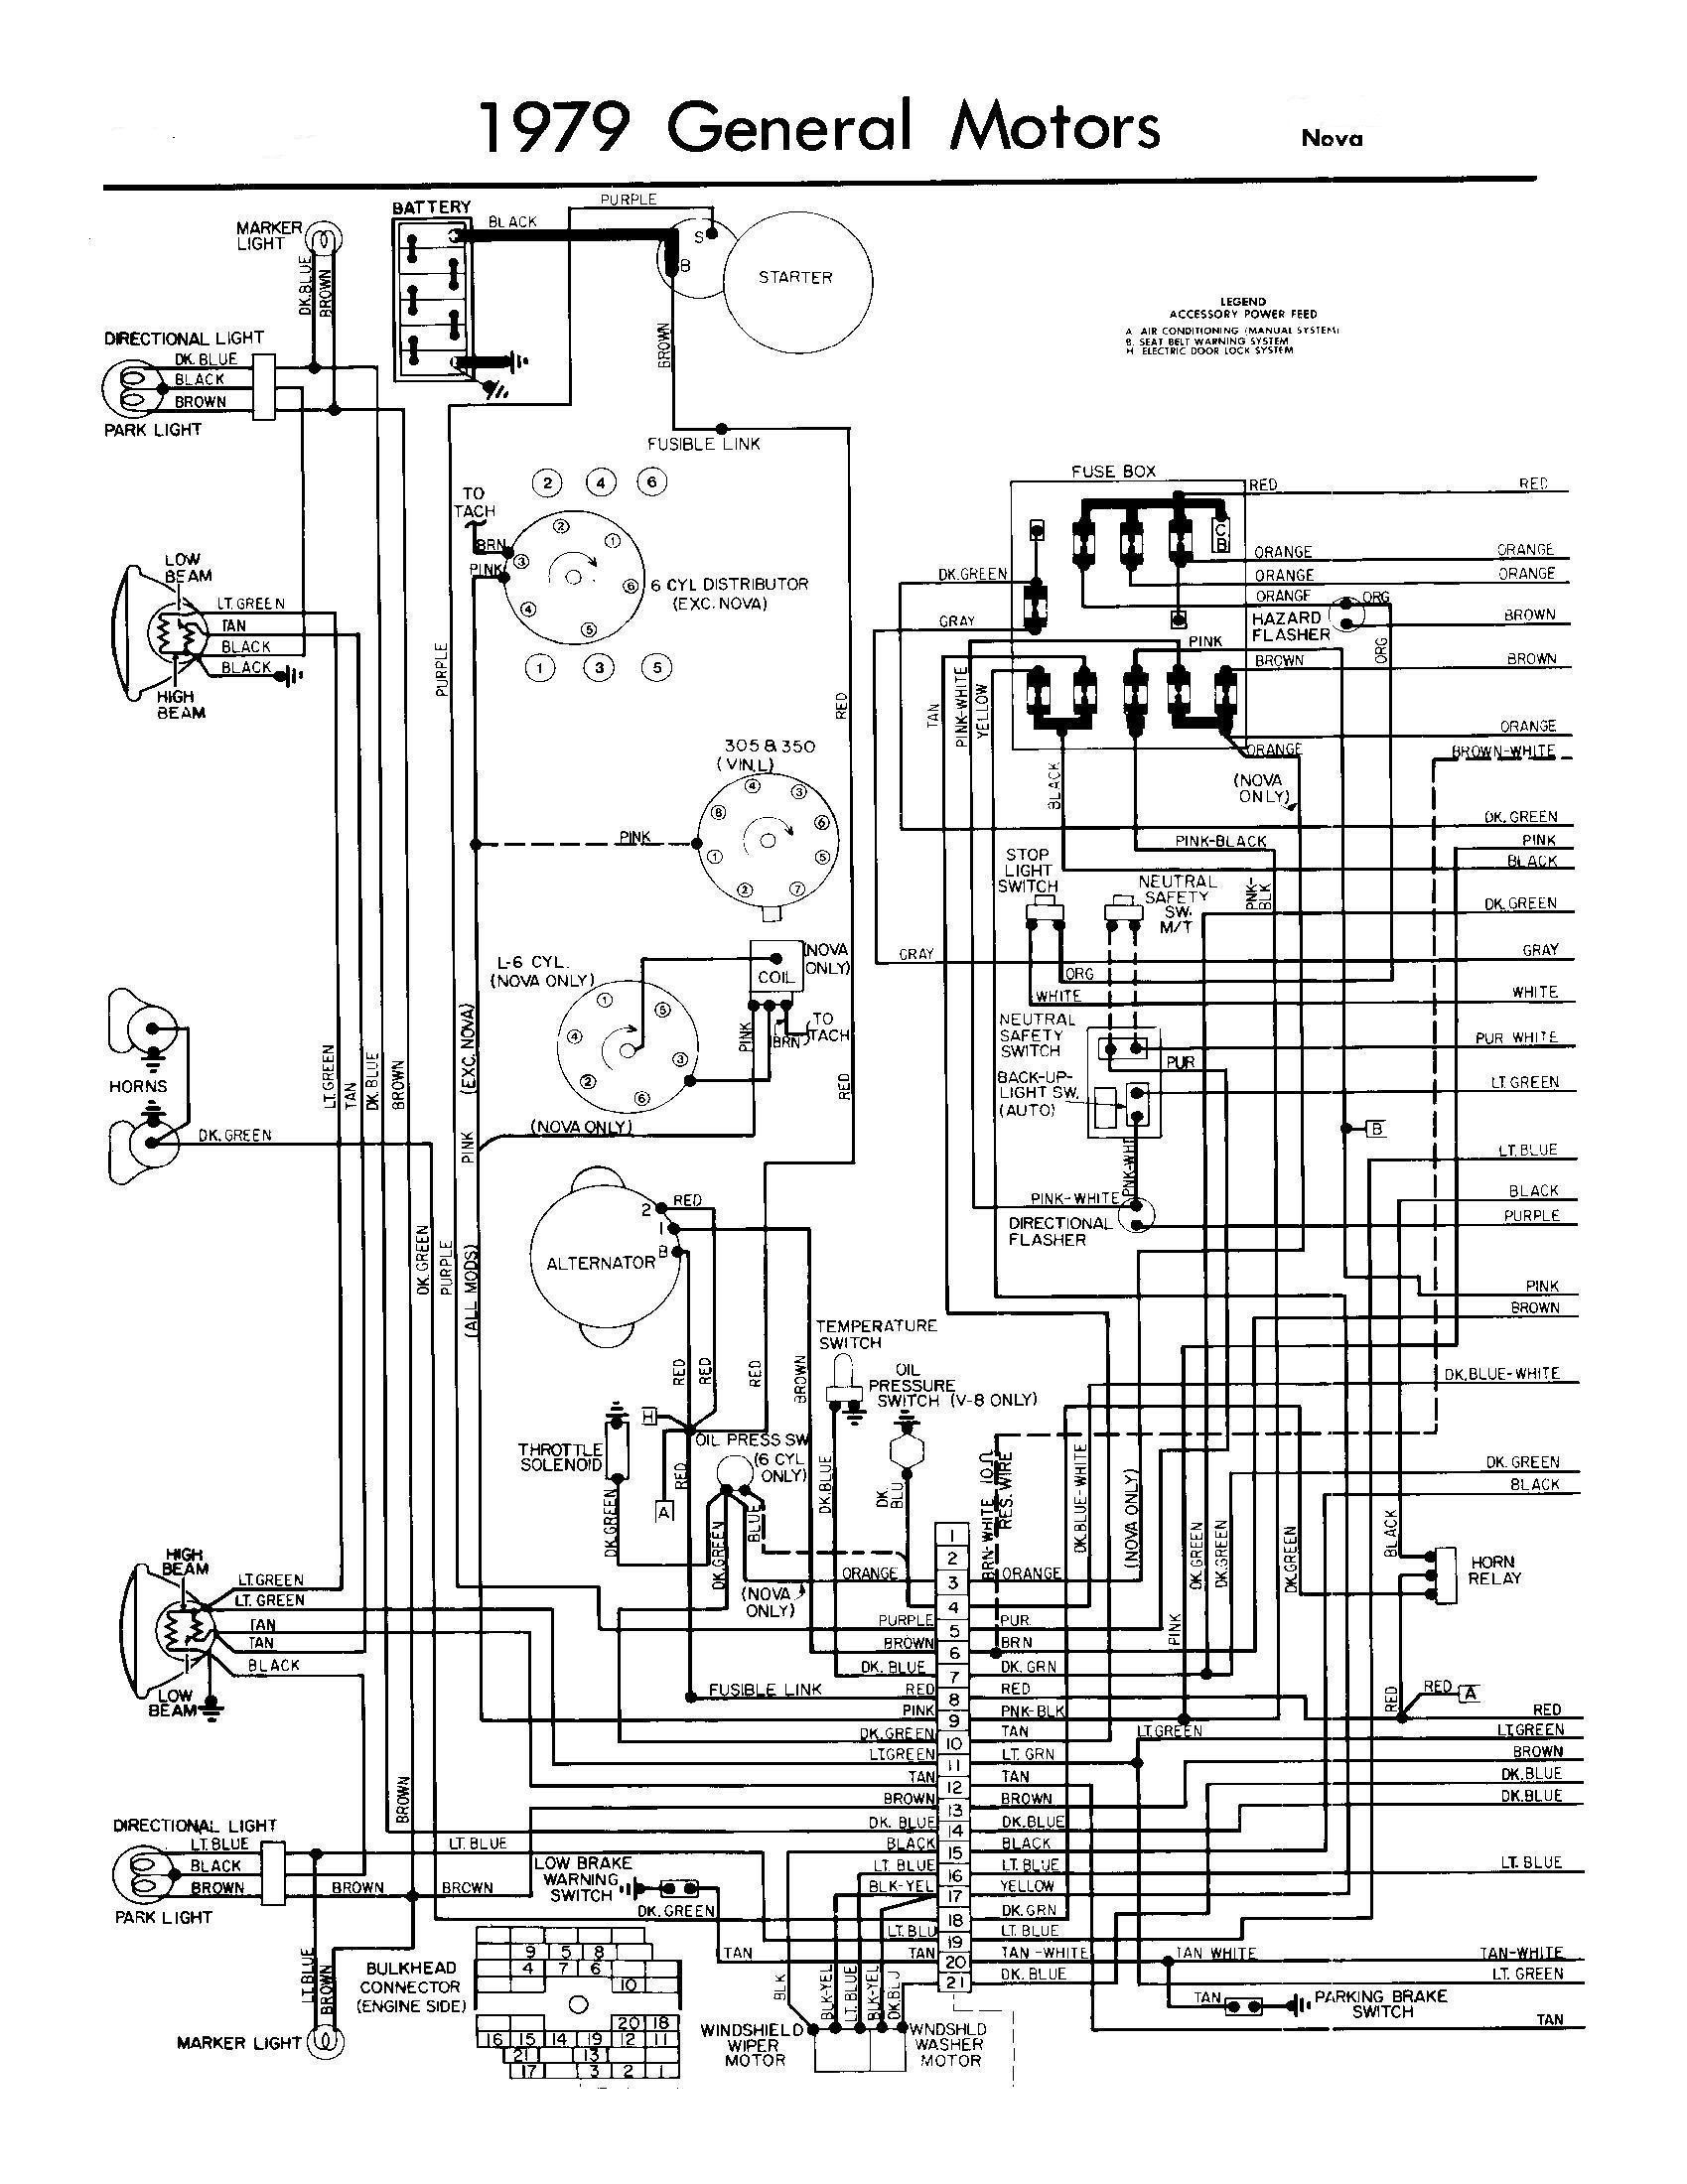 6644C8 Autotek 1 Ohm Wiring Diagram | Wiring Resources 2019 on controller cable, controller battery, controller cabinet, controller accessories, controller computer diagram,